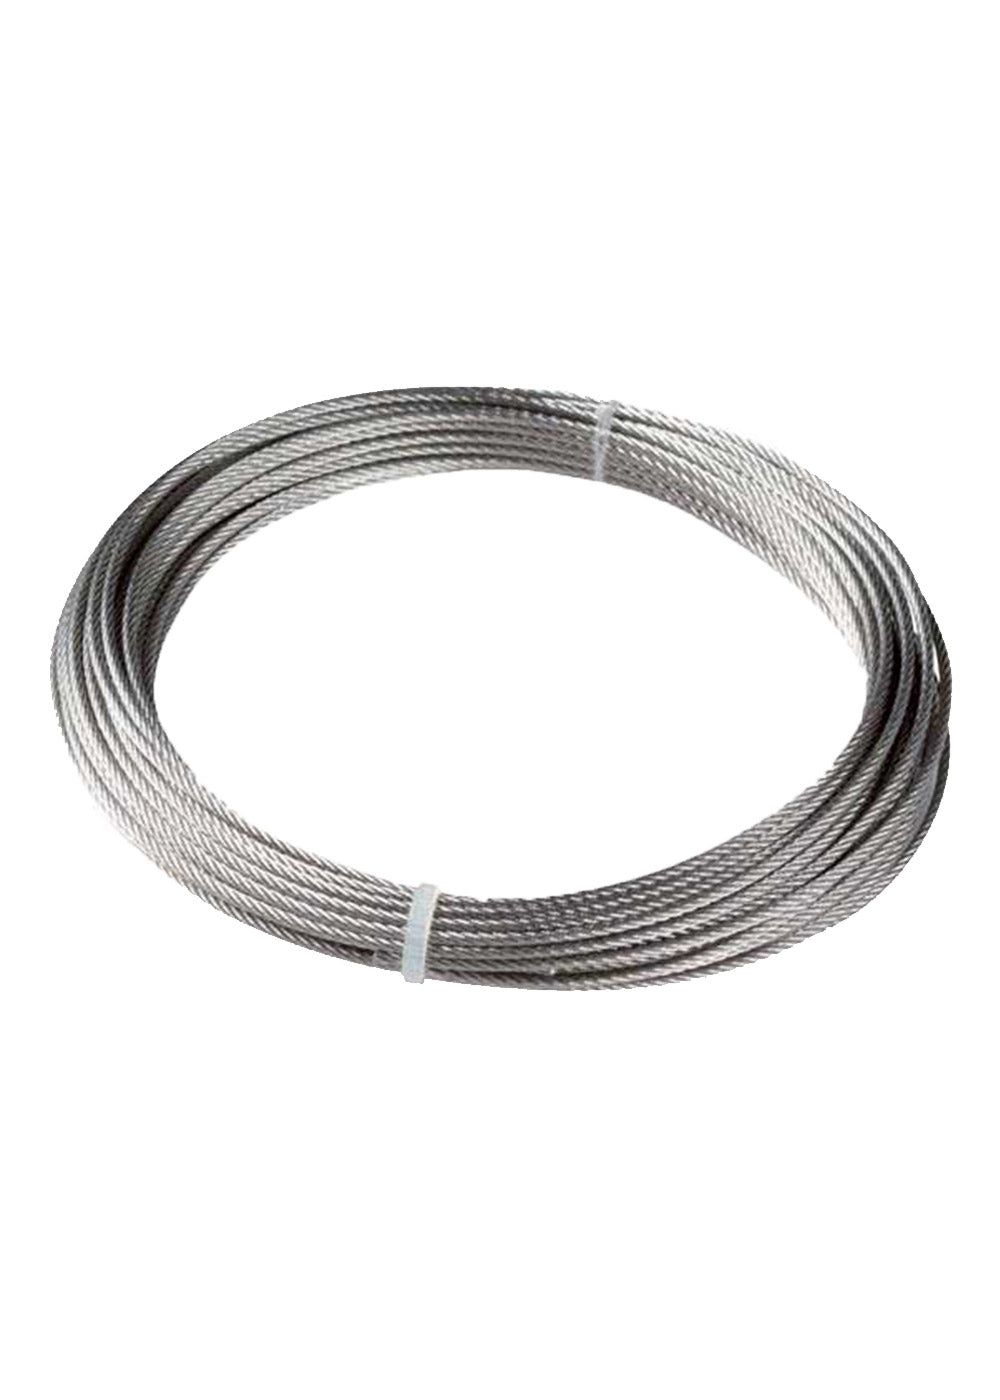 Omer Fish Stringer Stainless Steel Cable 5m